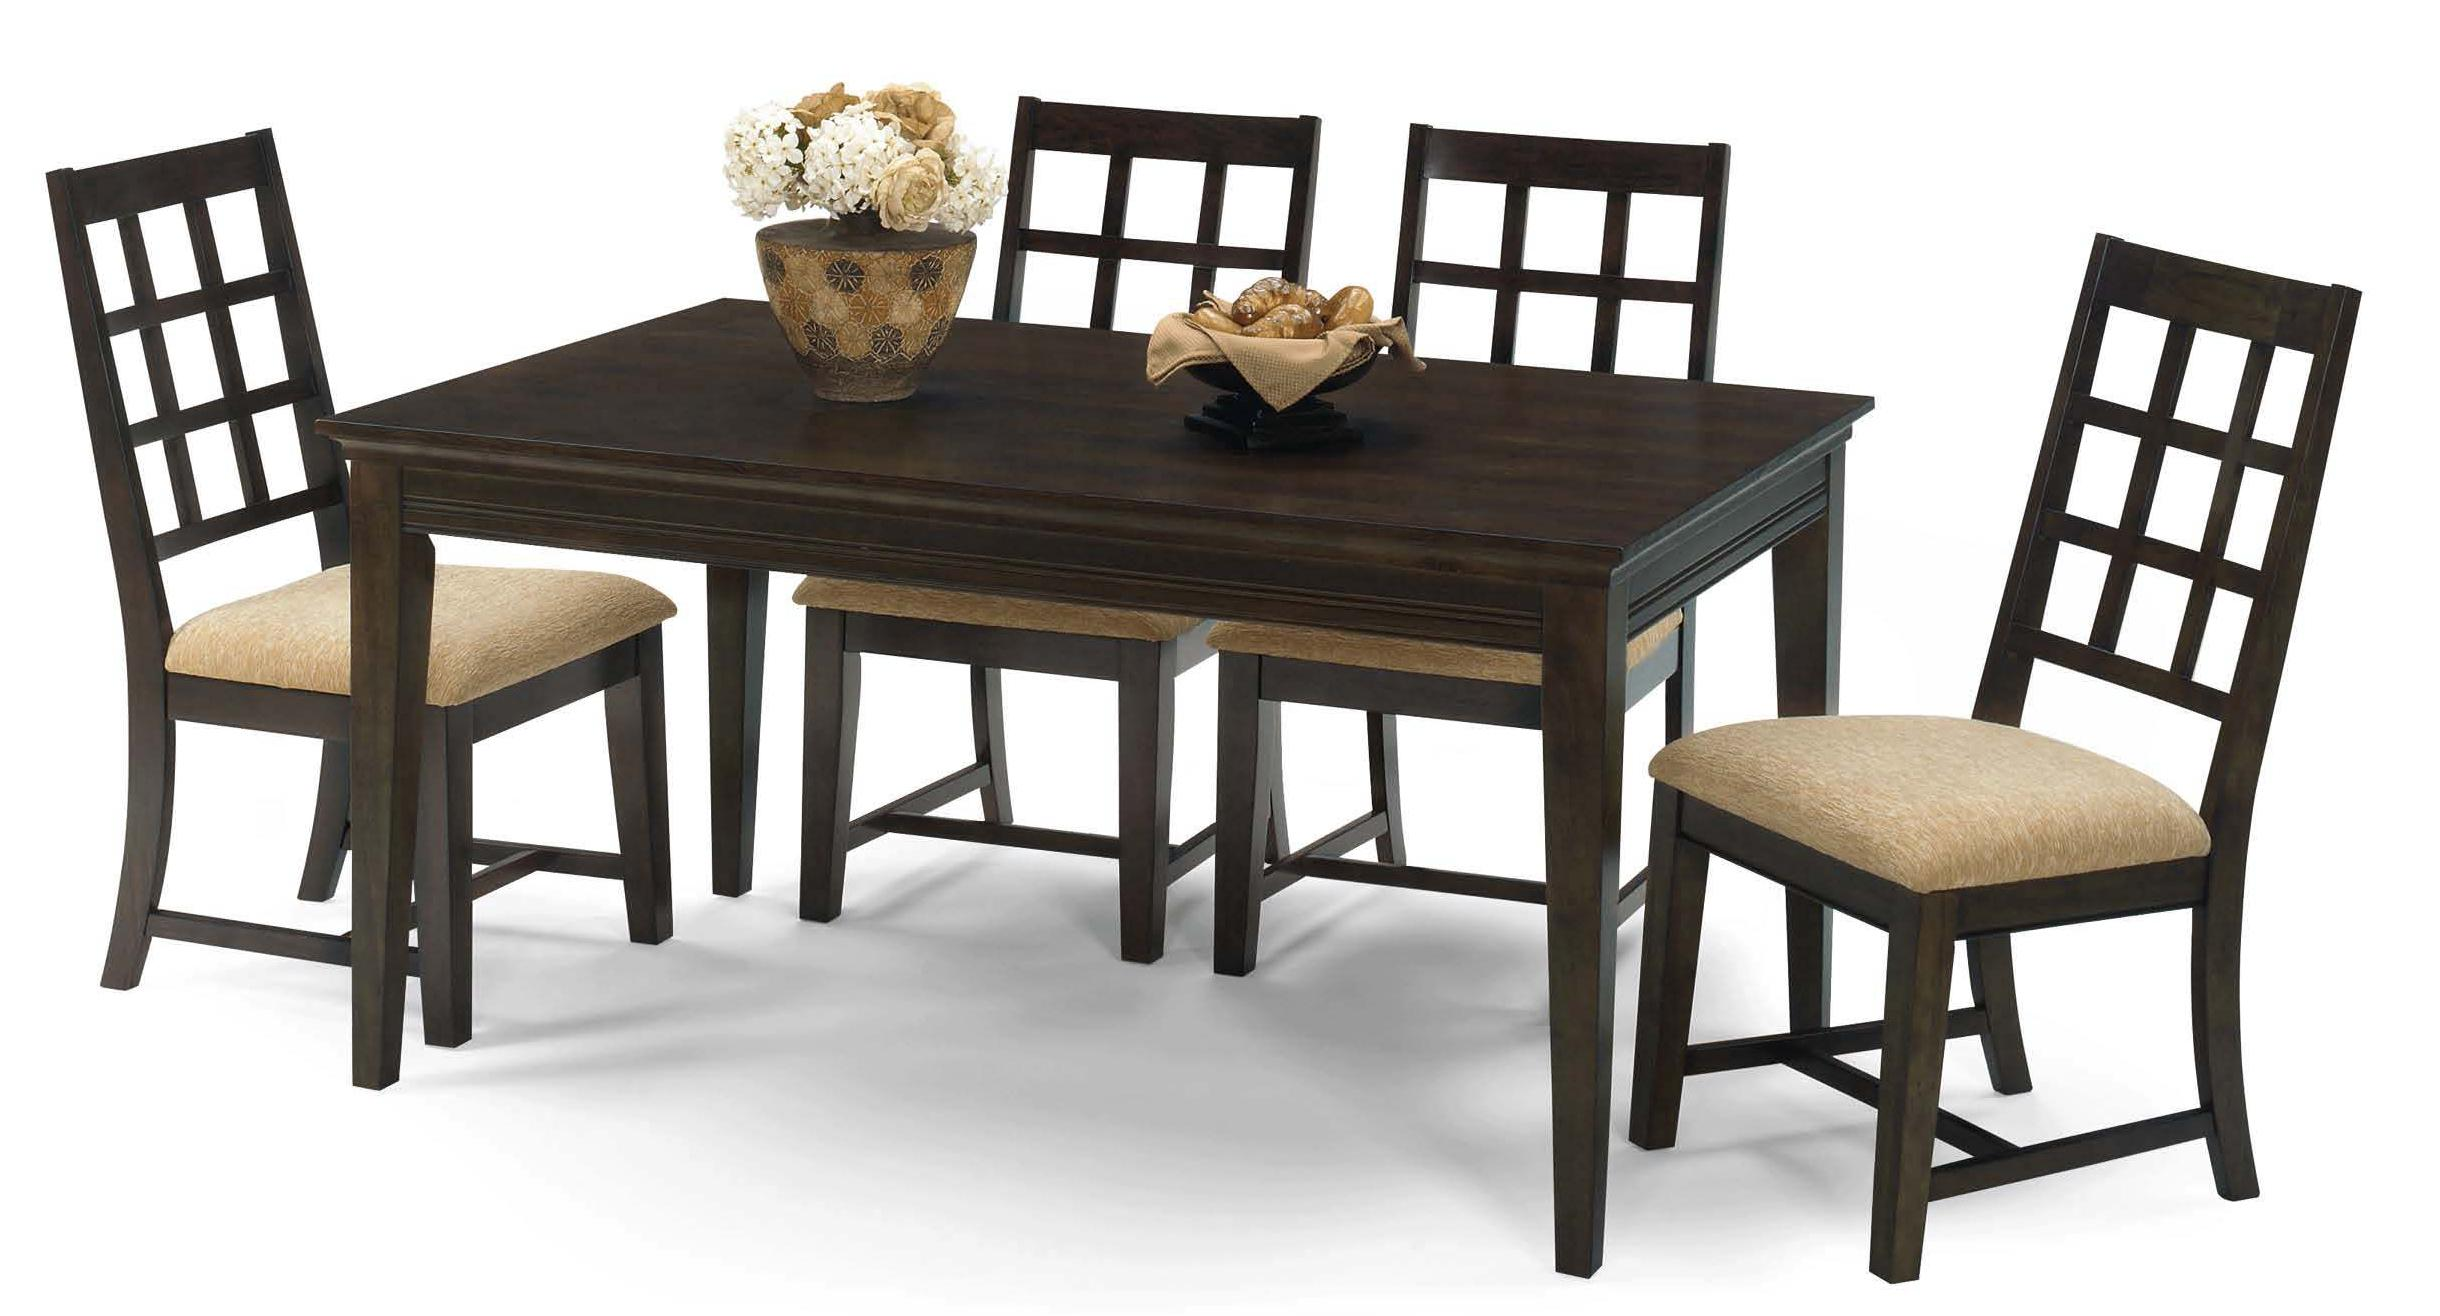 Progressive Furniture Casual Traditions 5 Piece Rectangular Dining Set - Item Number: P107-10+4x61